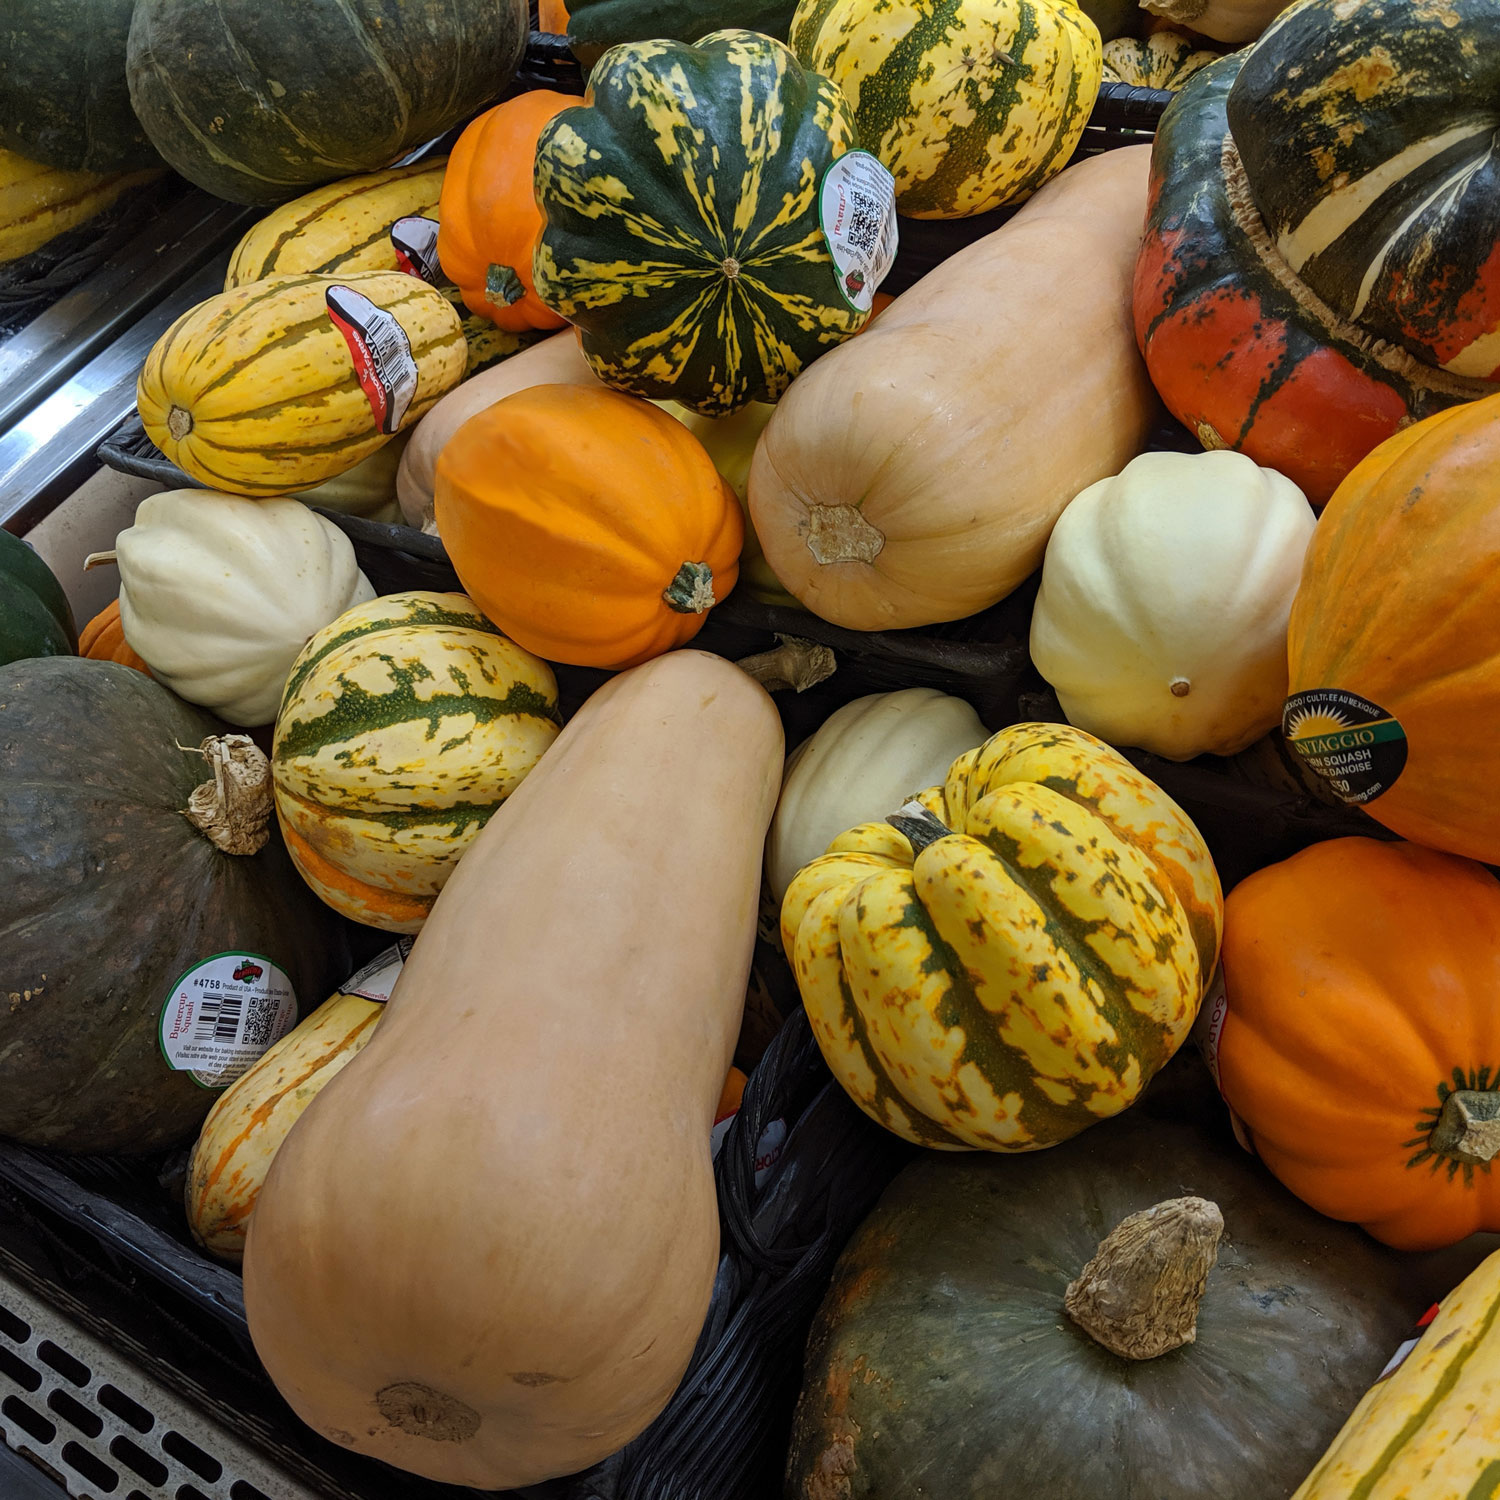 squash at grocery store